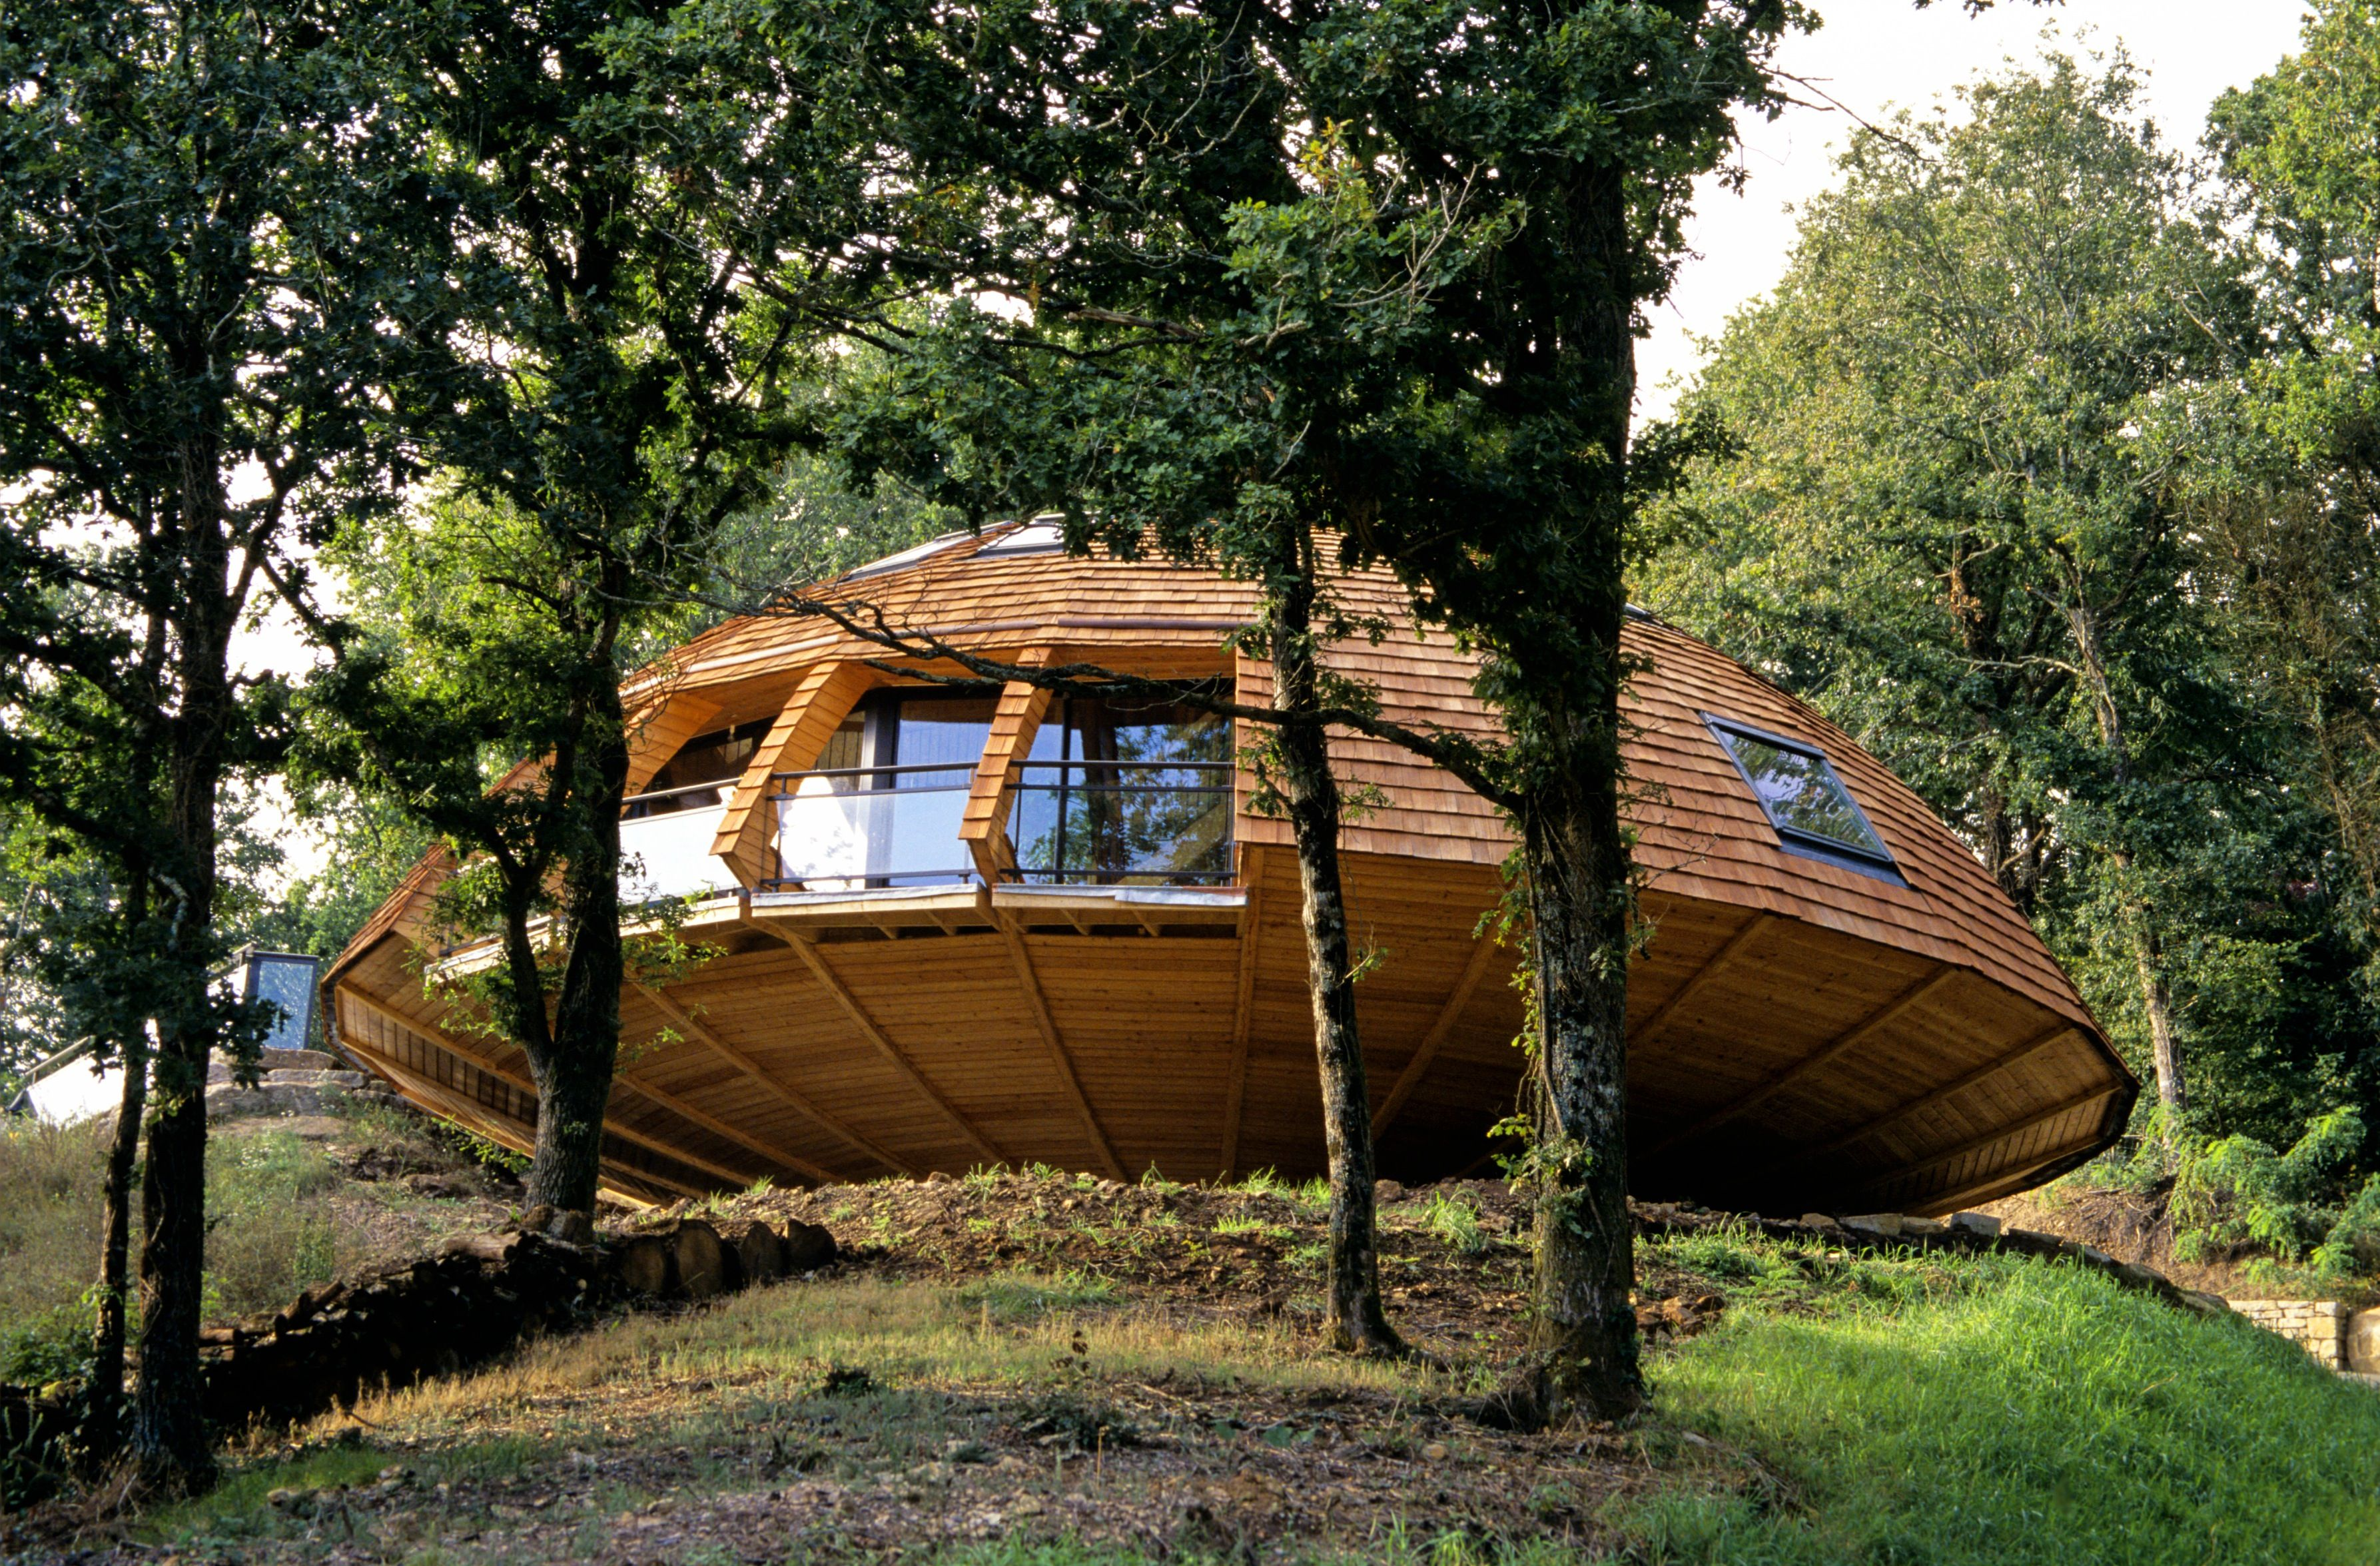 Best Kitchen Gallery: This 'diy' Domed Eco House Will Literally Make Your Head Spin of Eco Friendly Dome Home on rachelxblog.com